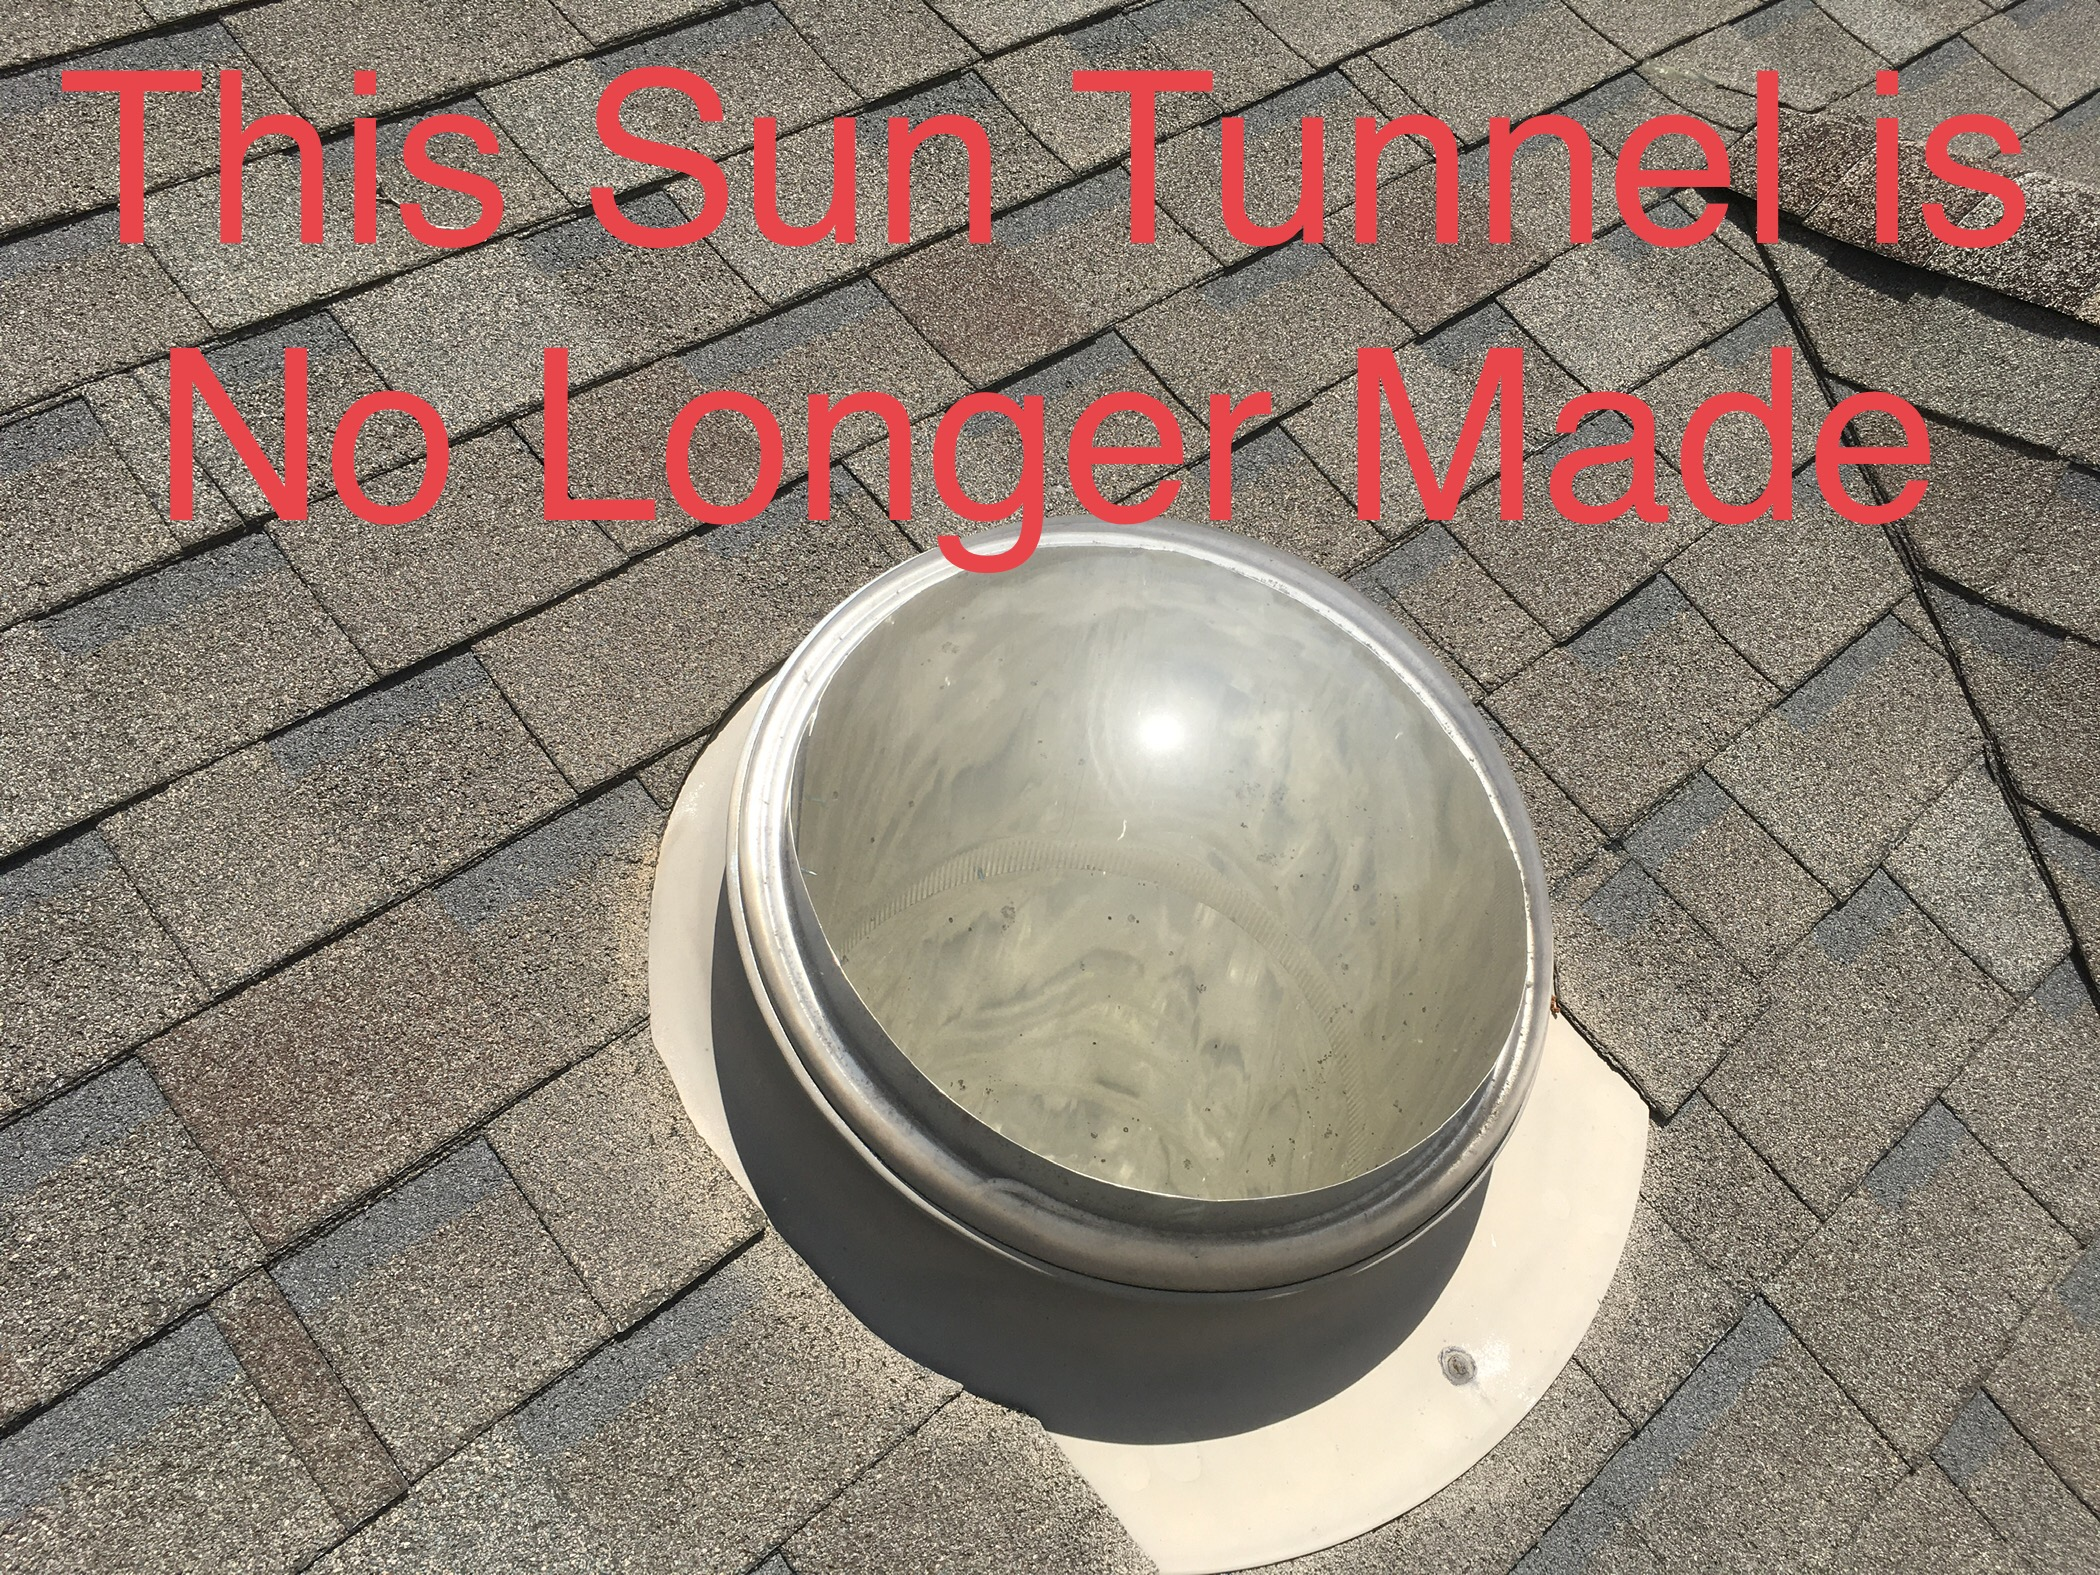 this is a picture of a sun tunnel in an old roof, the sun tunnel is no longer made